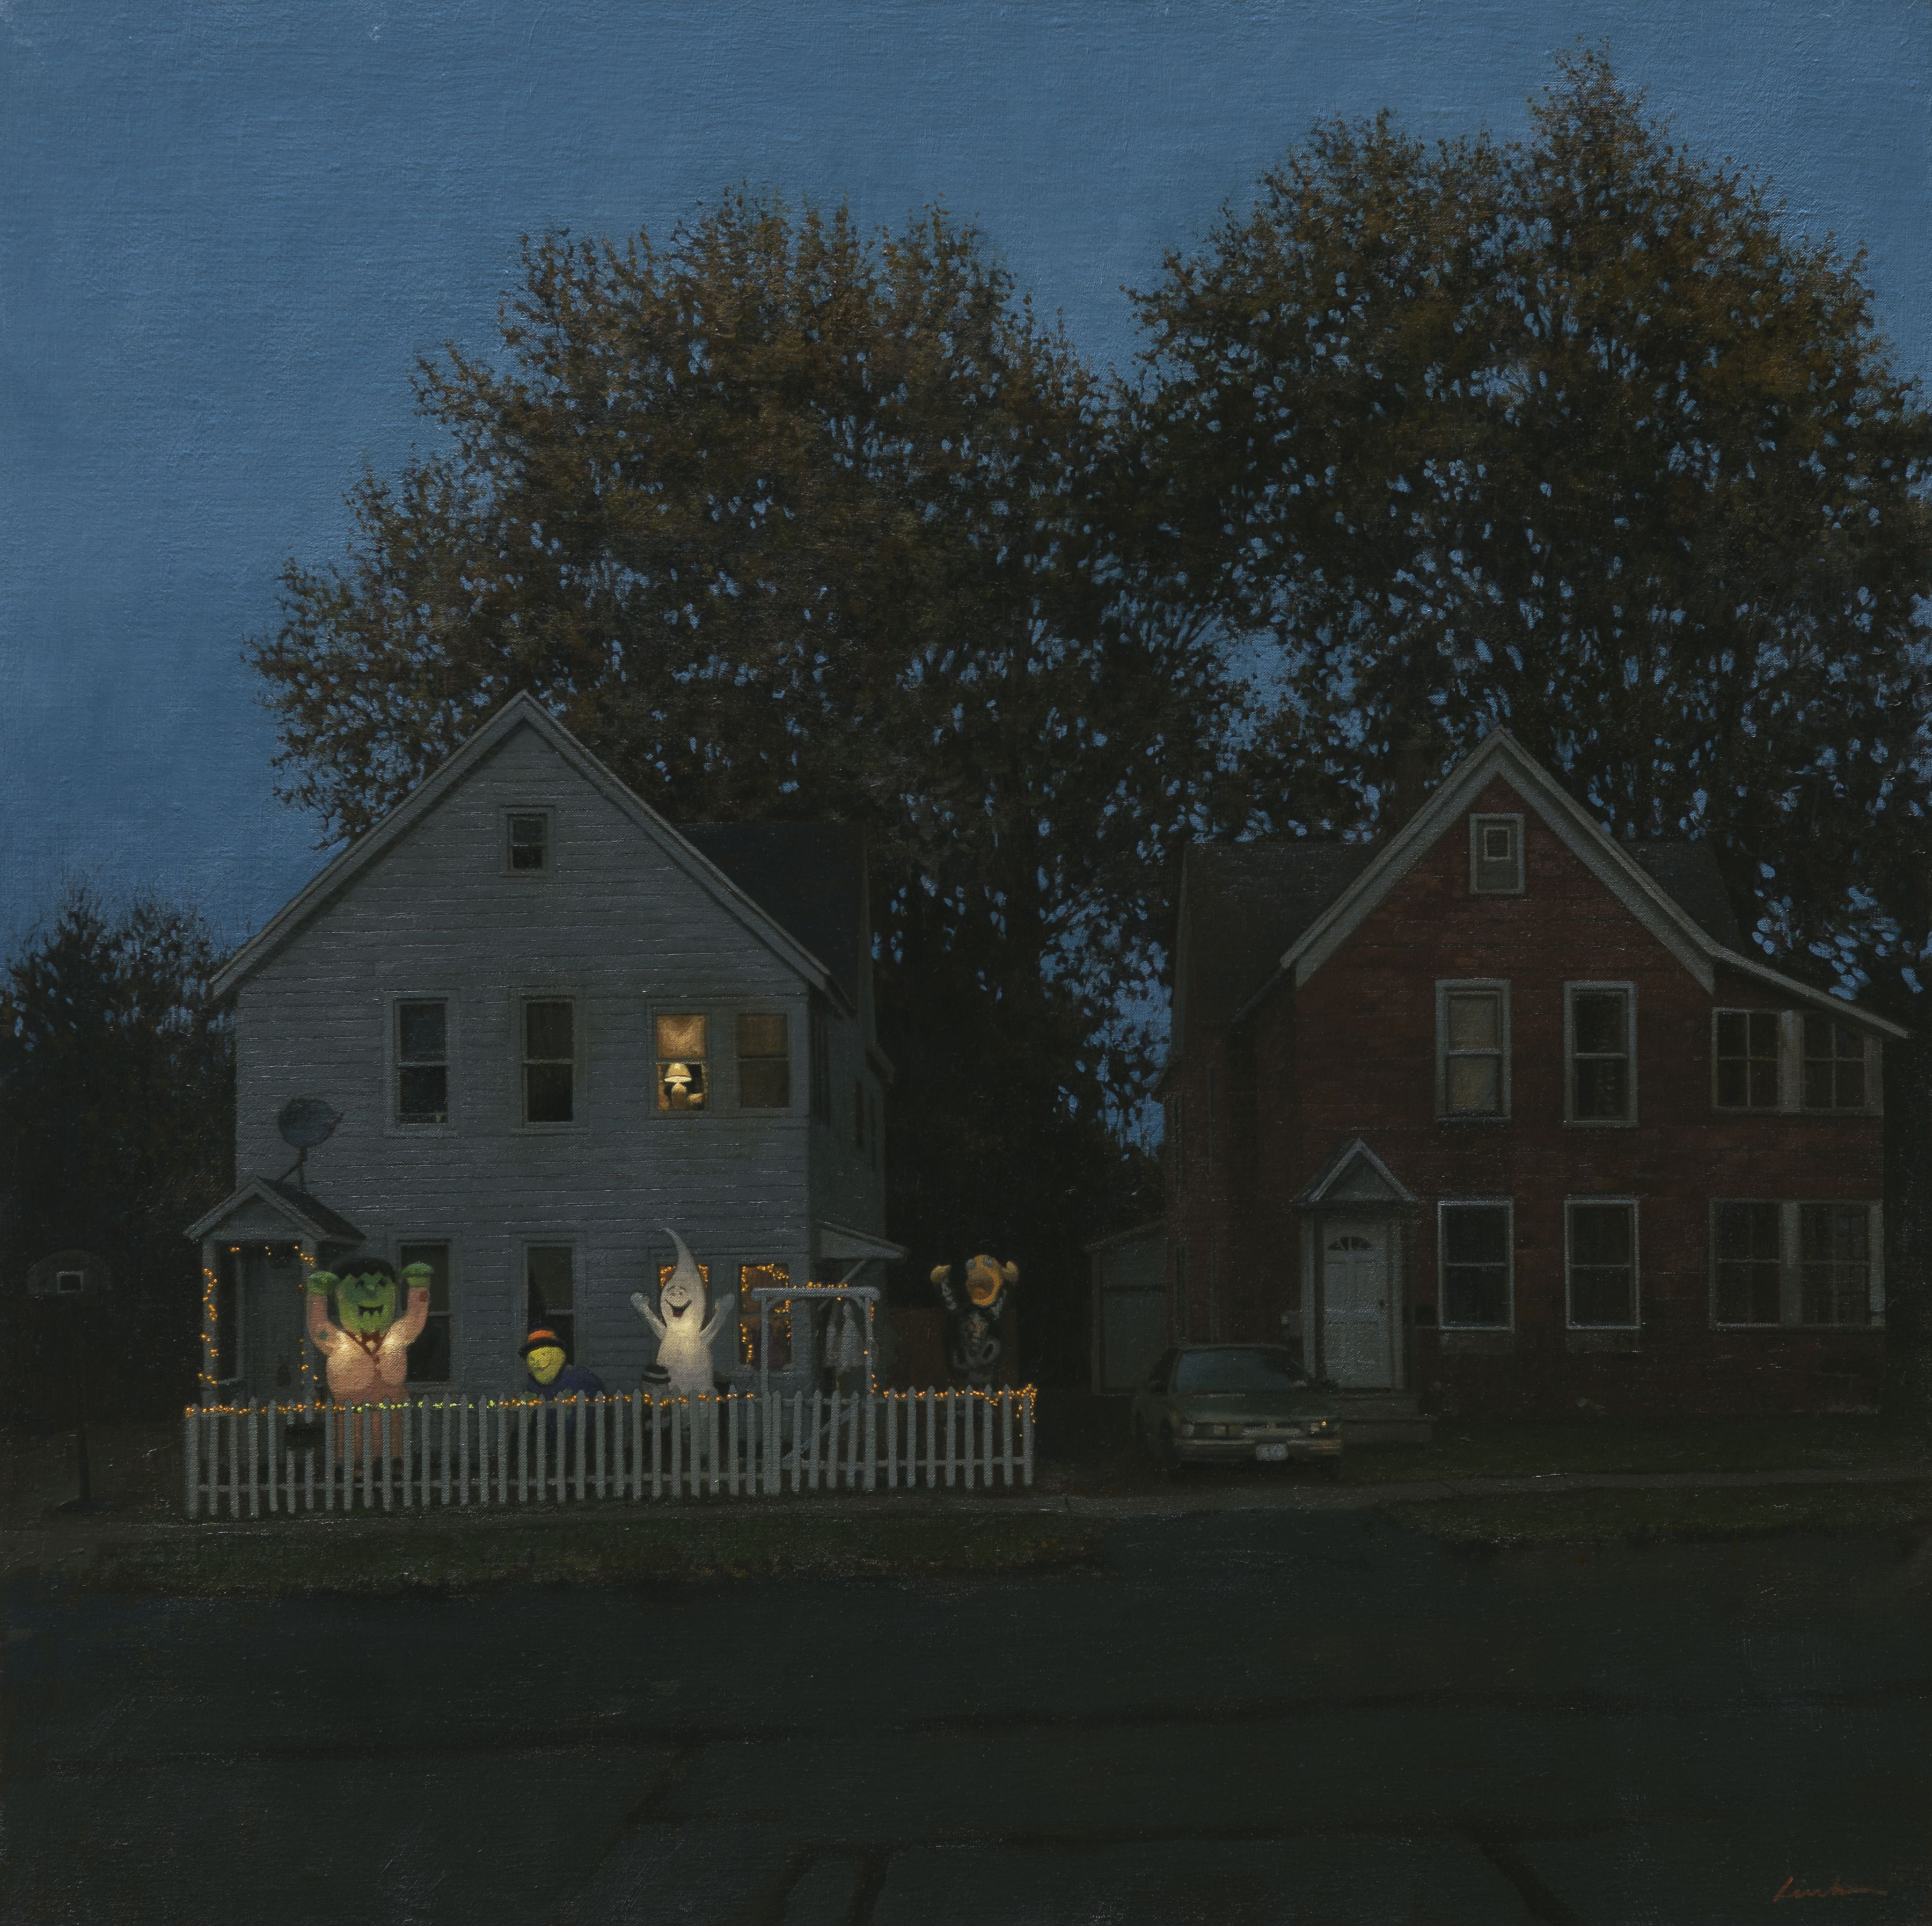 linden frederick, Haunted (SOLD), 2014, oil on linen, 34 x 34 inches